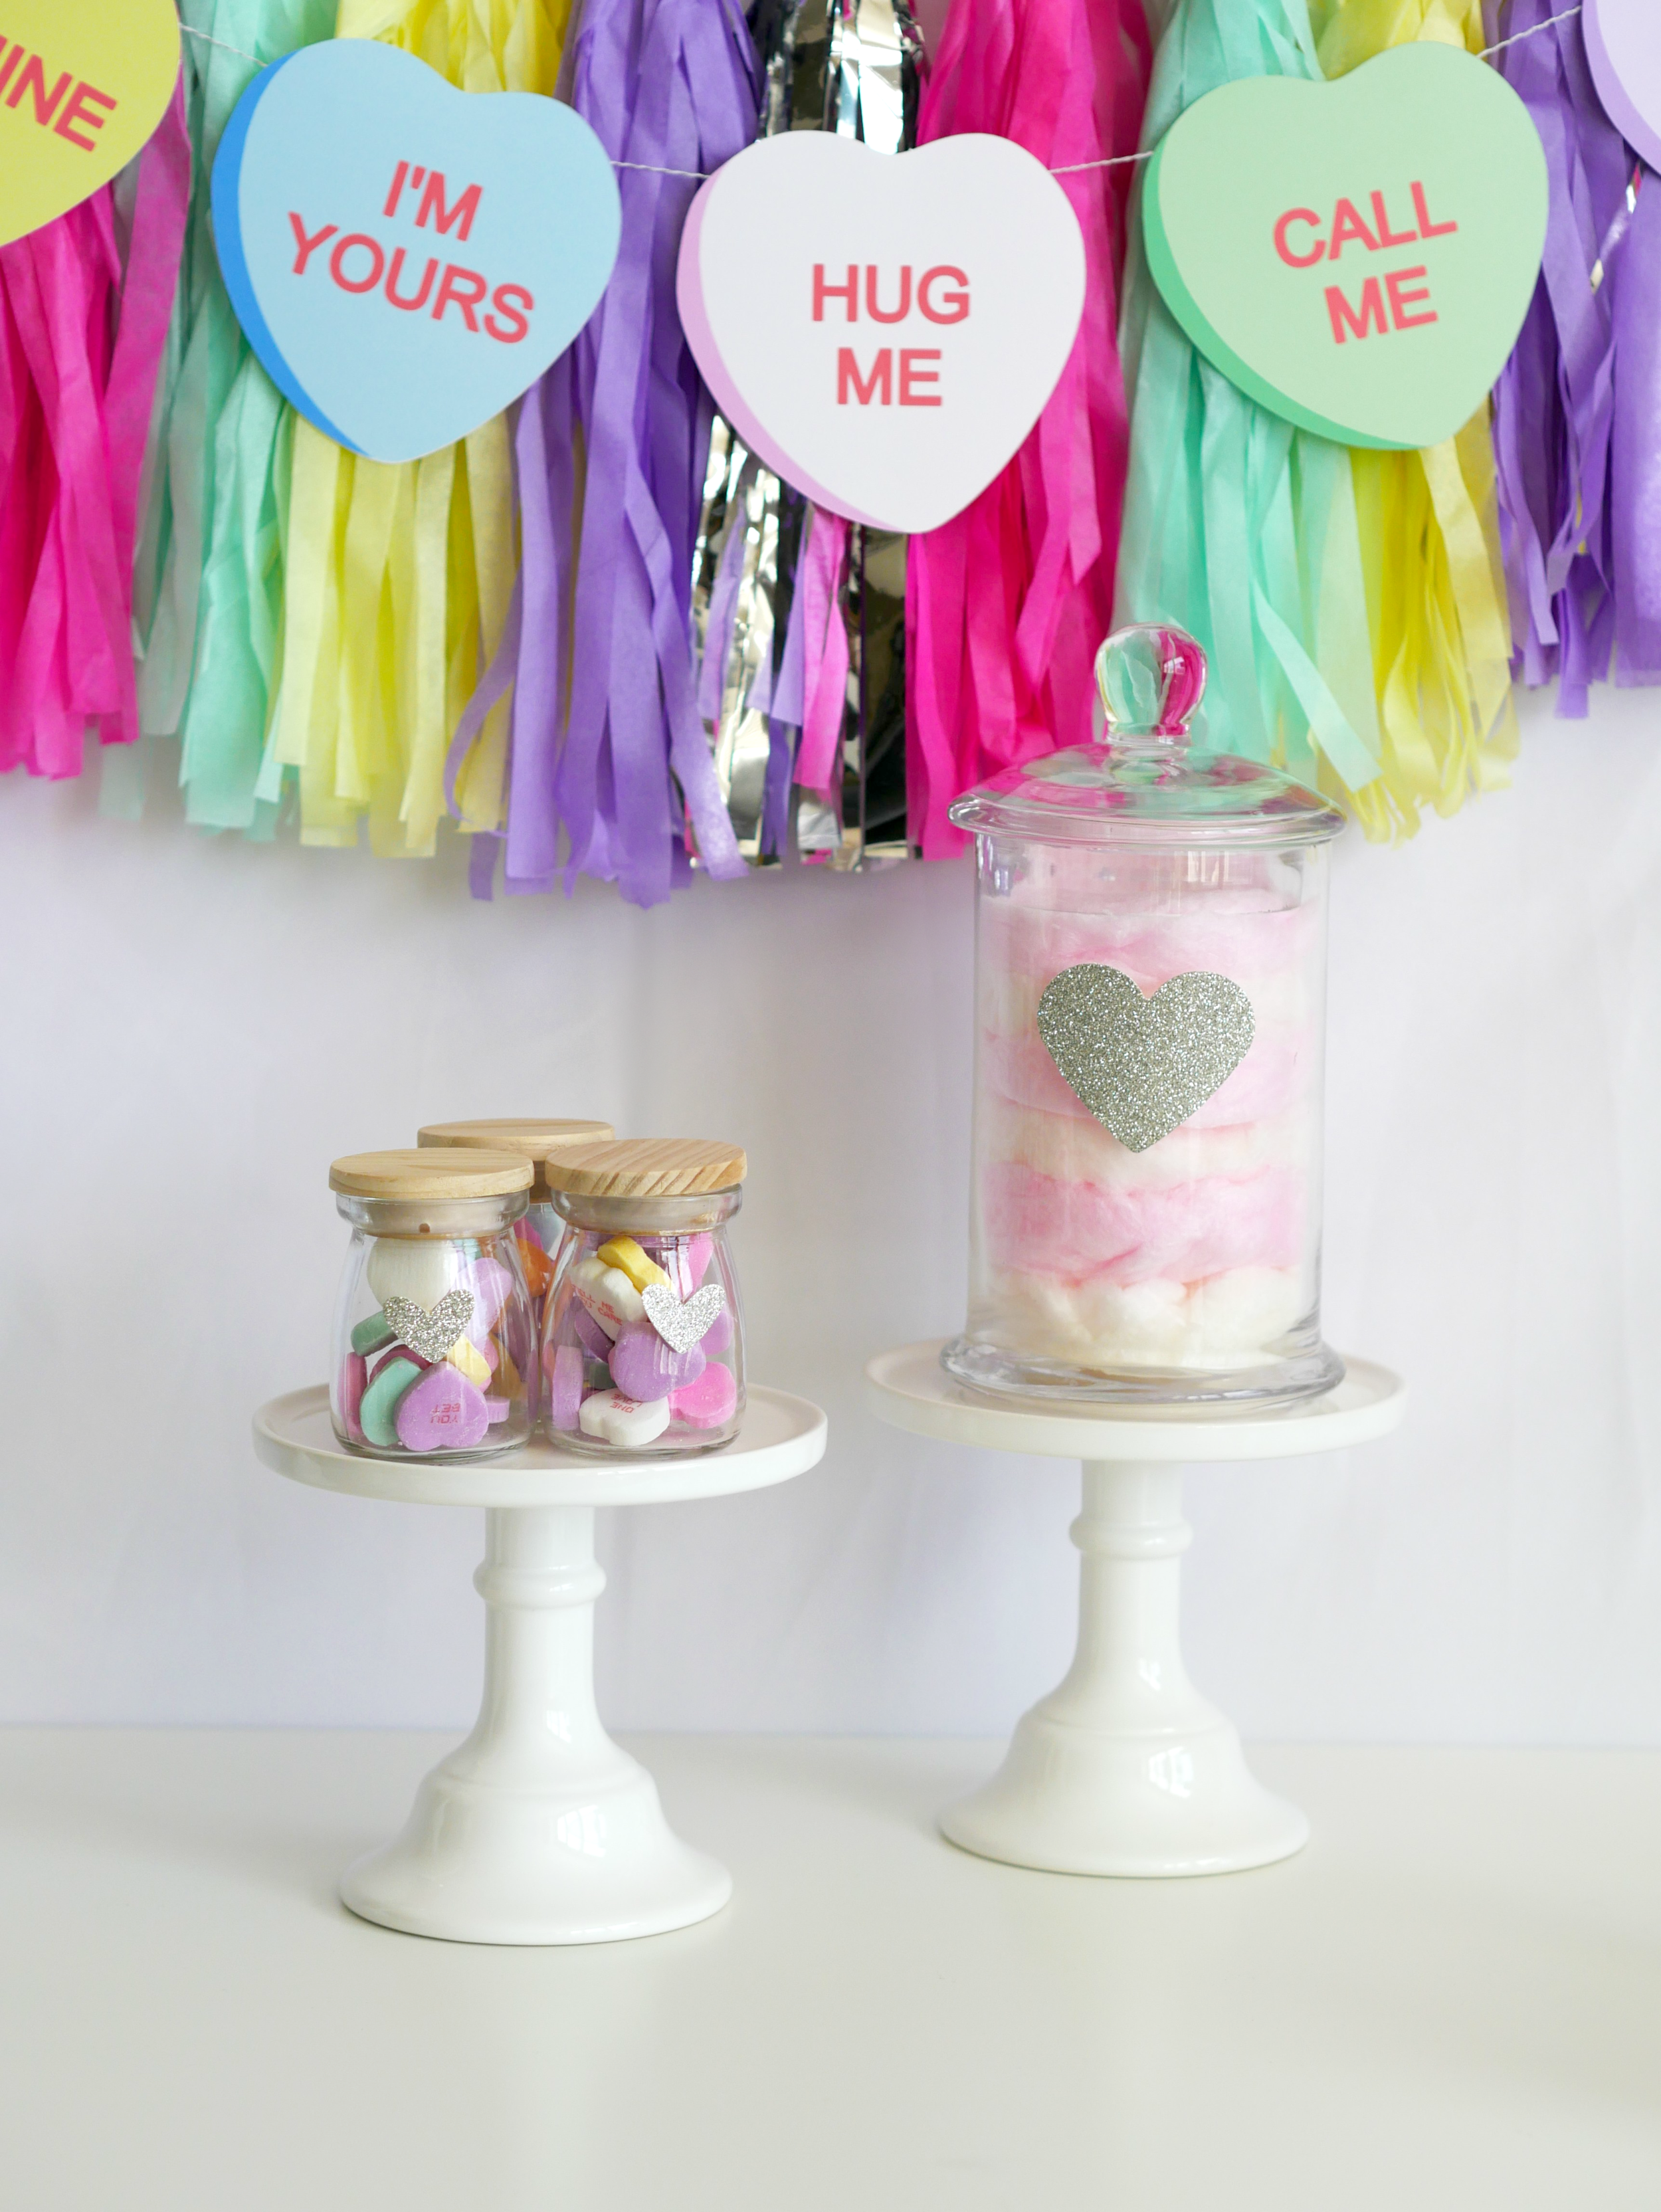 valentine's party decor / valentine's centerpiece ideas / valentine's dessert table / Cotton Candy Centerpiece / Conversation hearts party idea / Valentine's Party Idea for kids /Styled by Carolina from MINT Event Design / www.minteventdesign.com